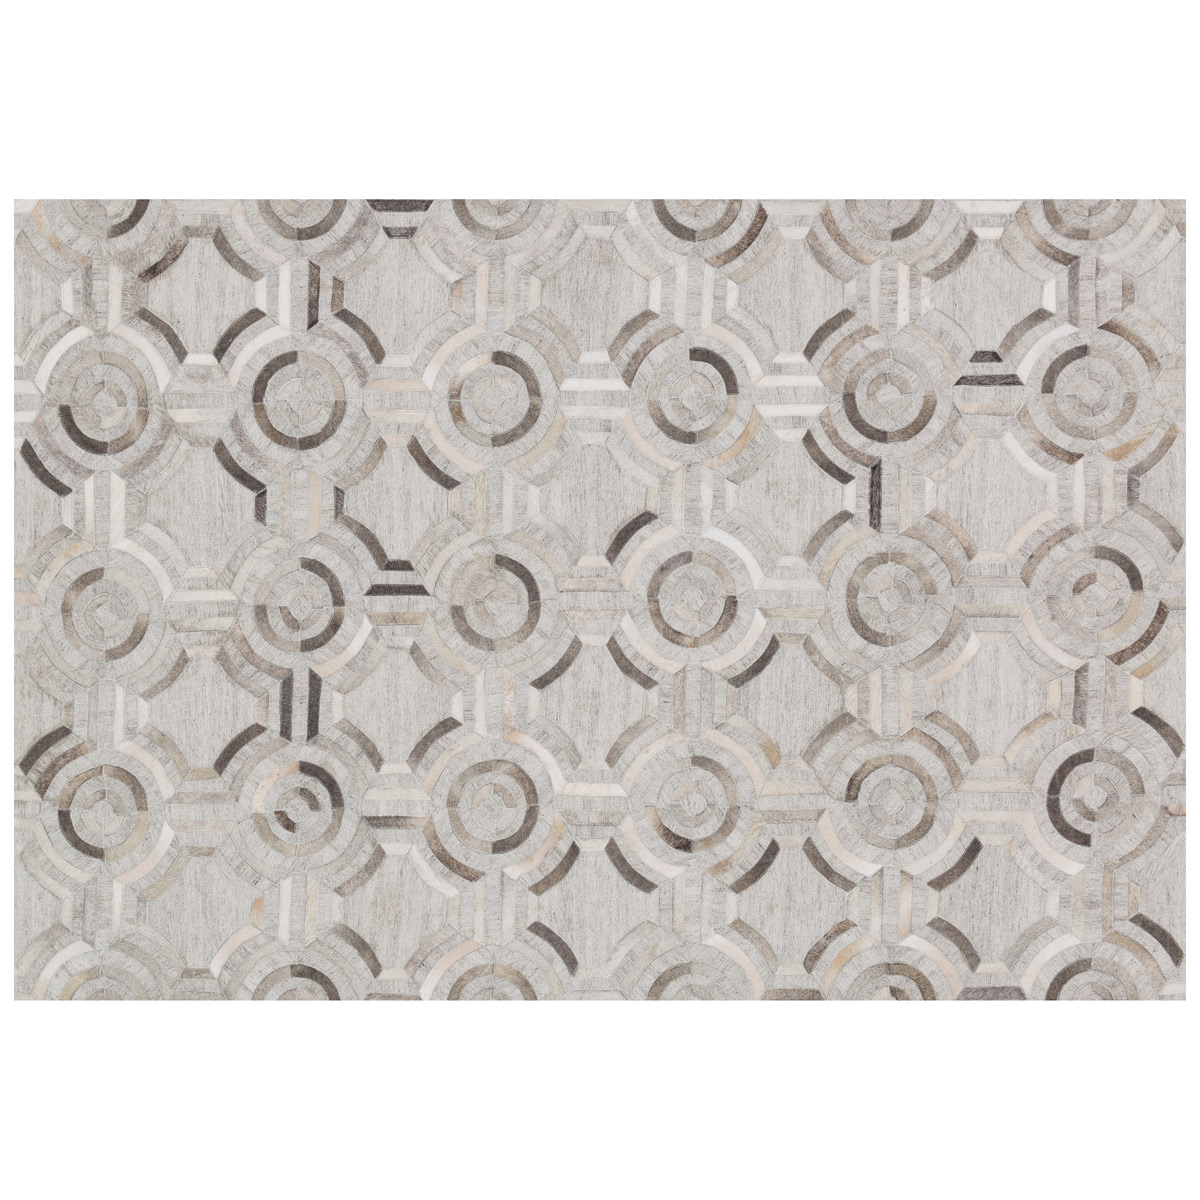 Black Forest Decor Dorado gray circles rug - 5 x 8